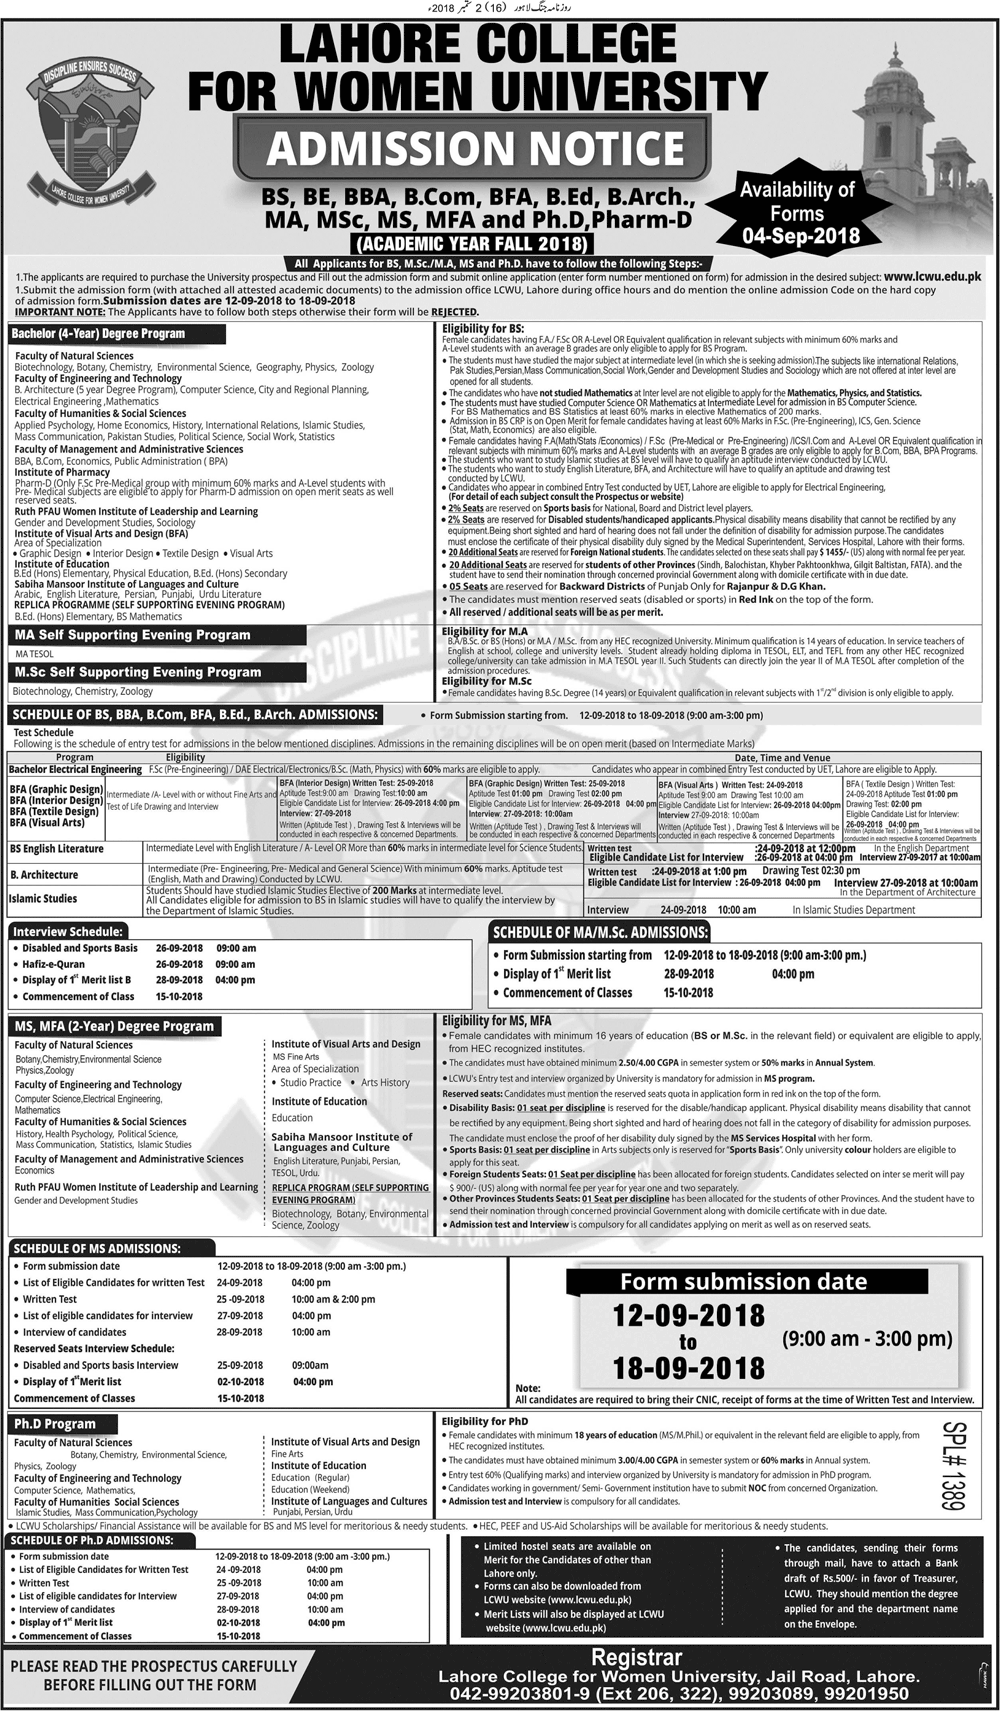 Lahore College for Women University – Admissions Fall 2018